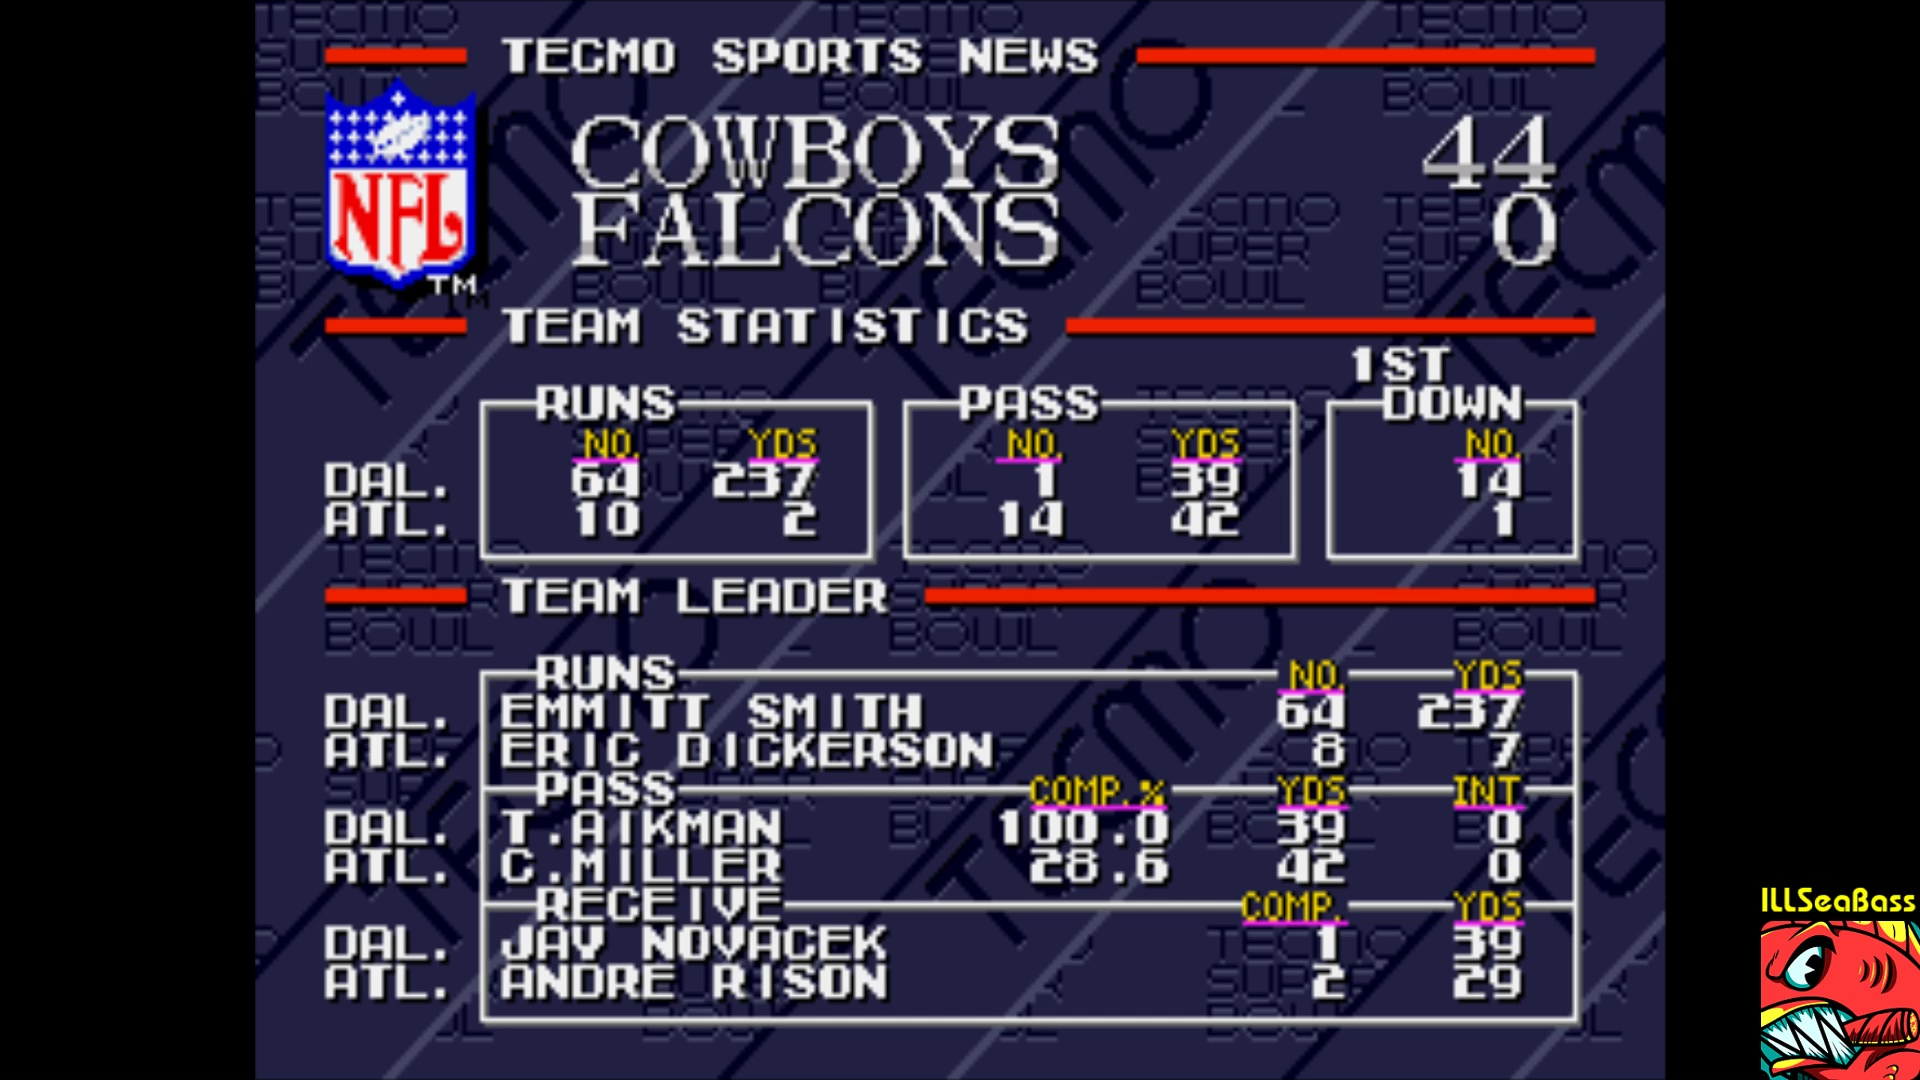 ILLSeaBass: Tecmo Super Bowl [Least 1st Downs Allowed] [Preseason Game] (Sega Genesis / MegaDrive Emulated) 1 points on 2018-01-26 08:58:04